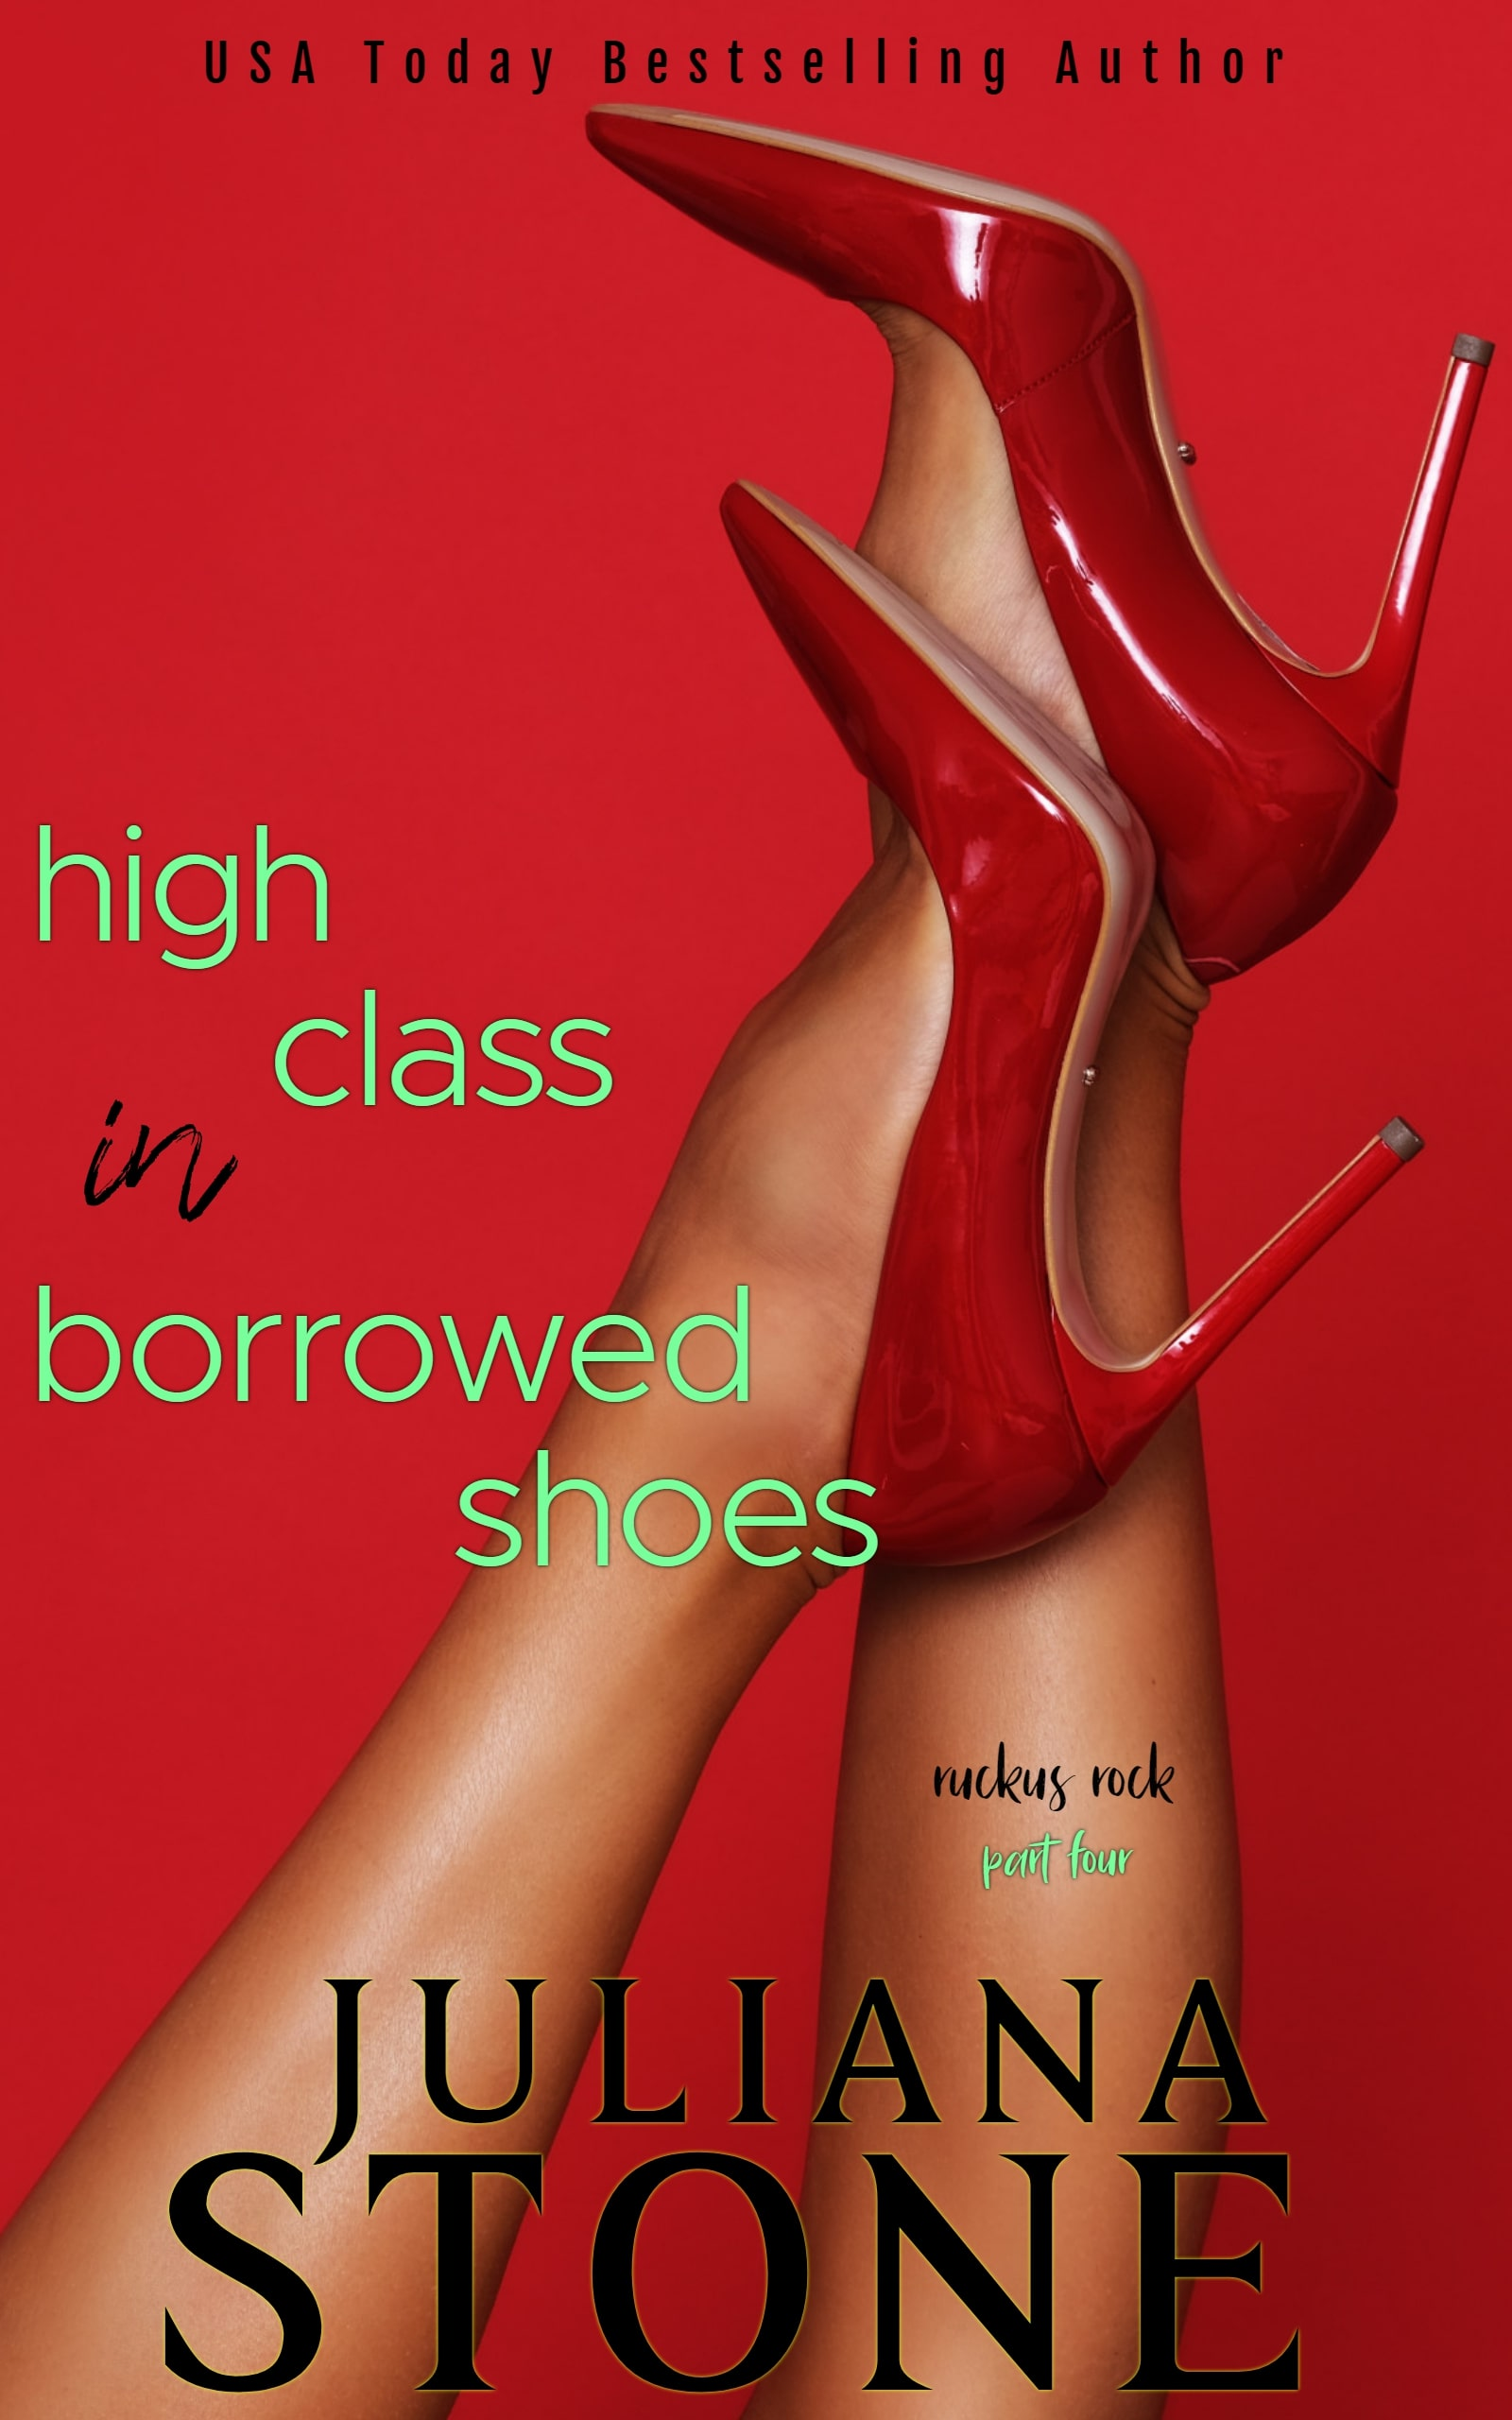 High Class In Borrowed Shoes-Part Four by Juliana Stone